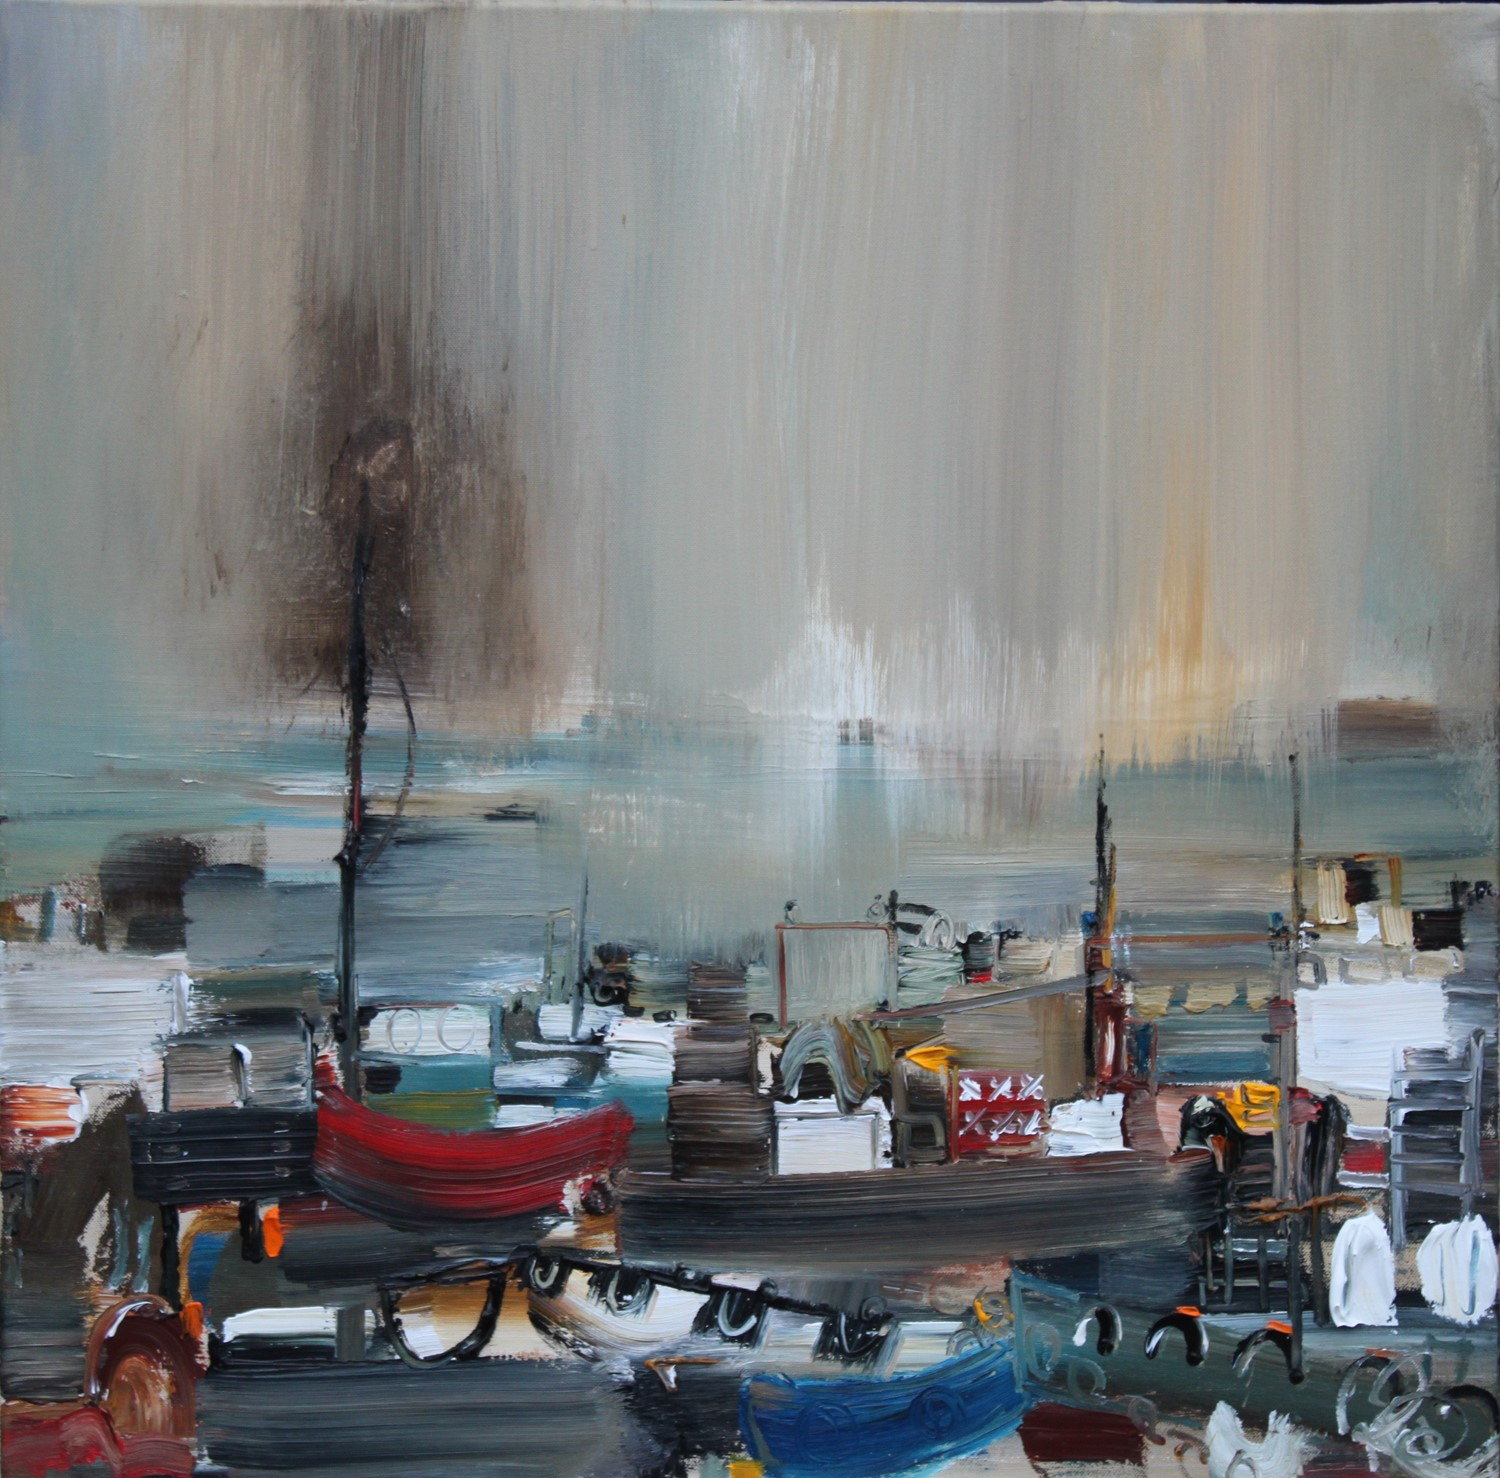 'Bustling with Boats' by artist Rosanne Barr